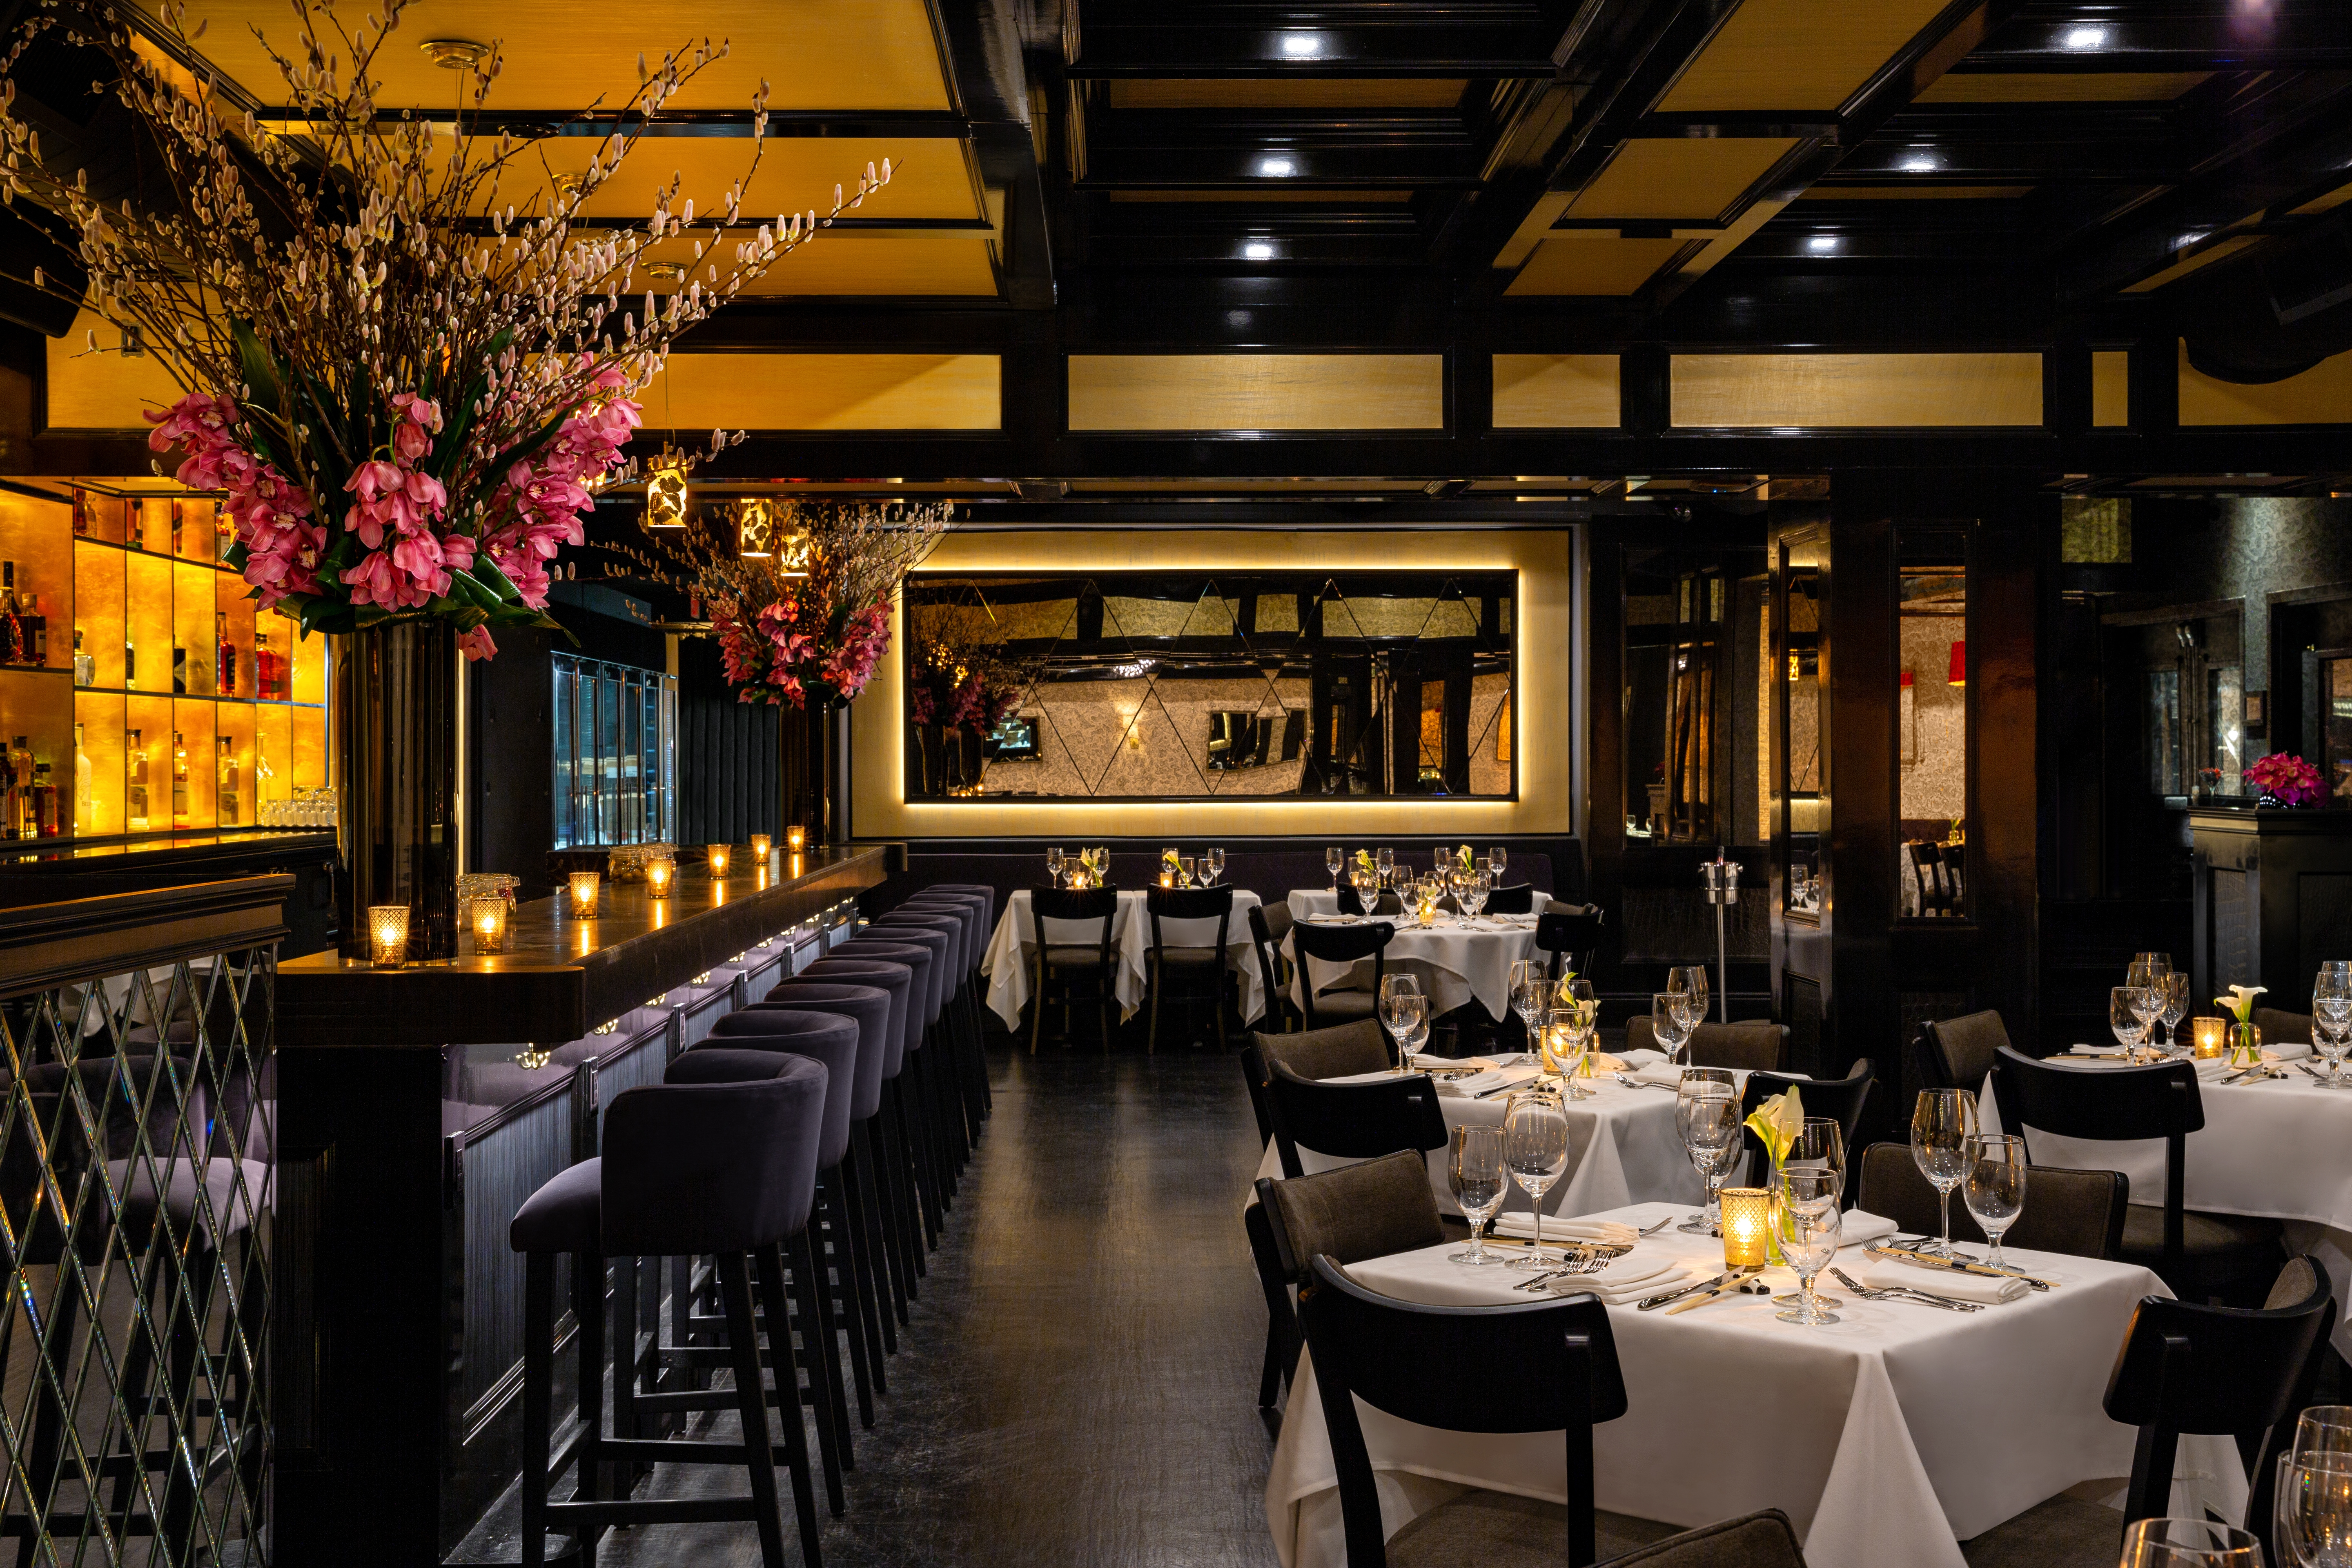 Philippe_Chow_NYC_Downtown_Bar_Dining_Room